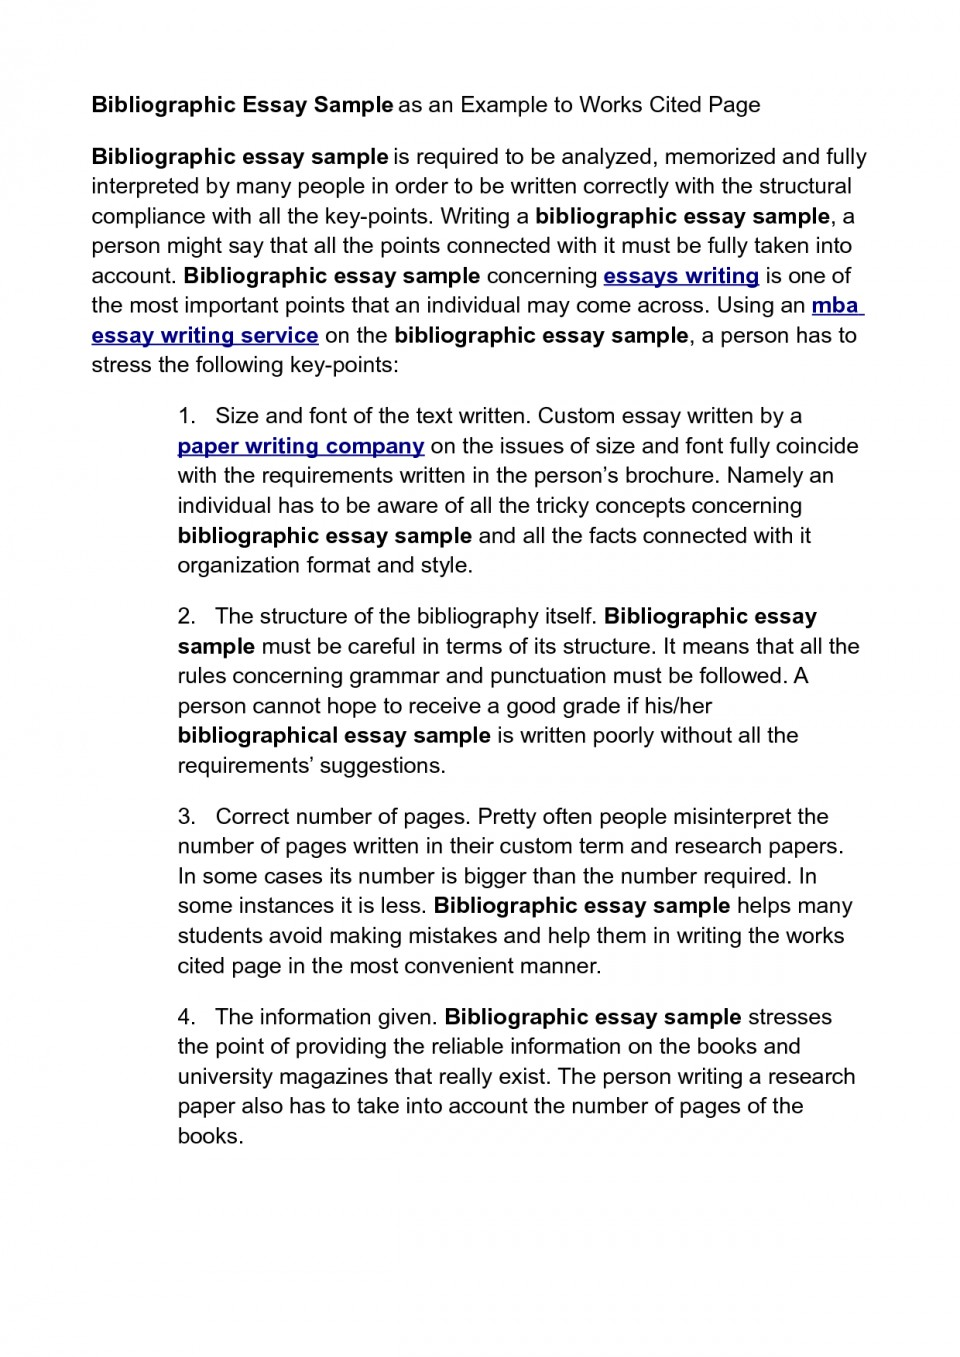 018 How To Cite An Essay Example Sample Persuasive With Works Cited Of Mla L Archaicawful Unpublished Paper In Apa Style Anthology 960